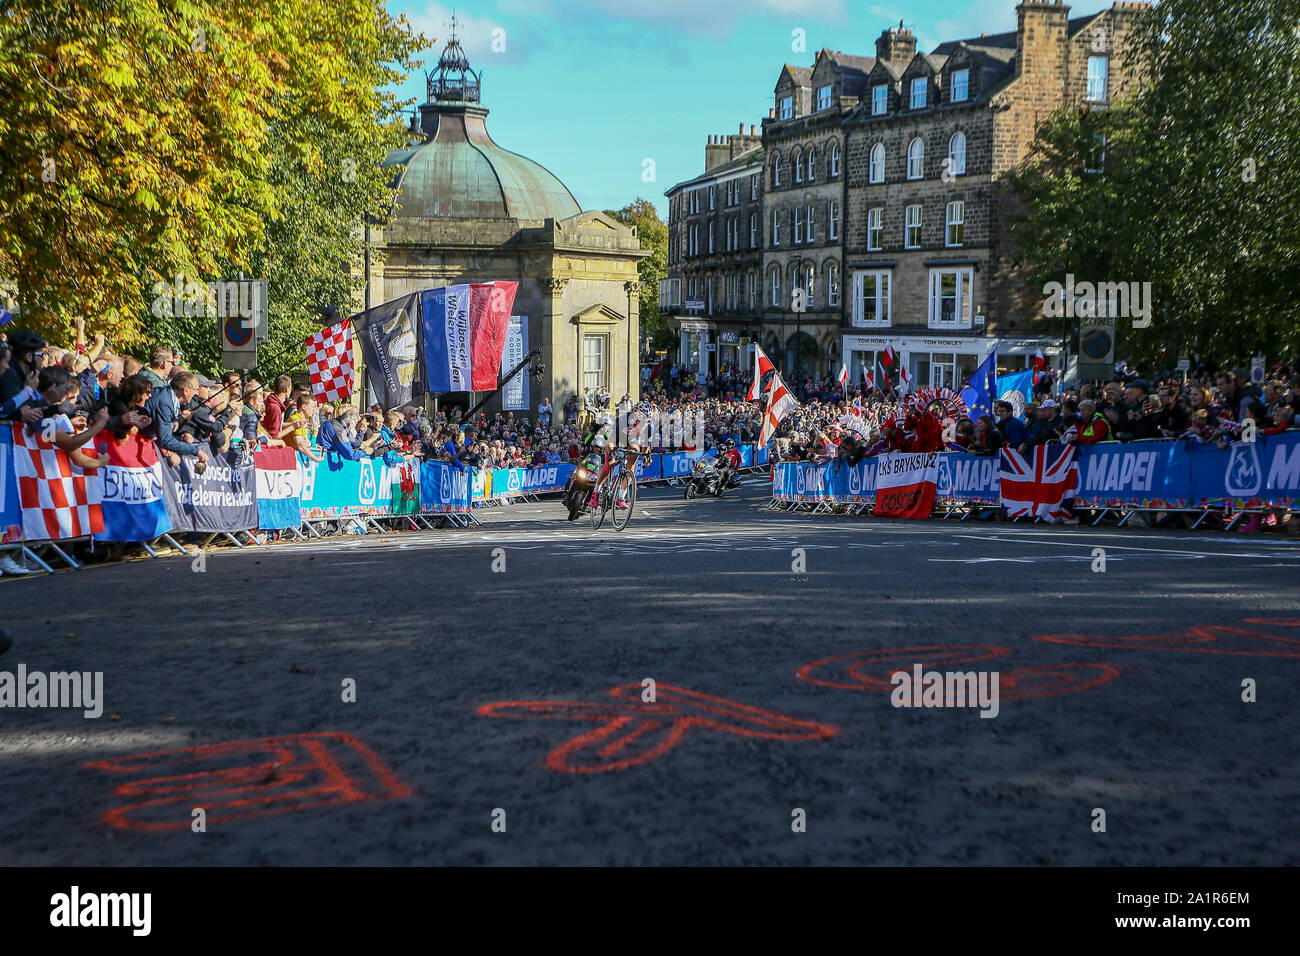 Harrogate, UK. 28th Sep, 2019. Chloe Dygert of the USA tackles one of the many hills on the Harrogate circuit in the 2019 UCI Road World Championships Womens Elite Road Race. September 28, 2019 Credit Dan-Cooke/Alamy Live News Stock Photo